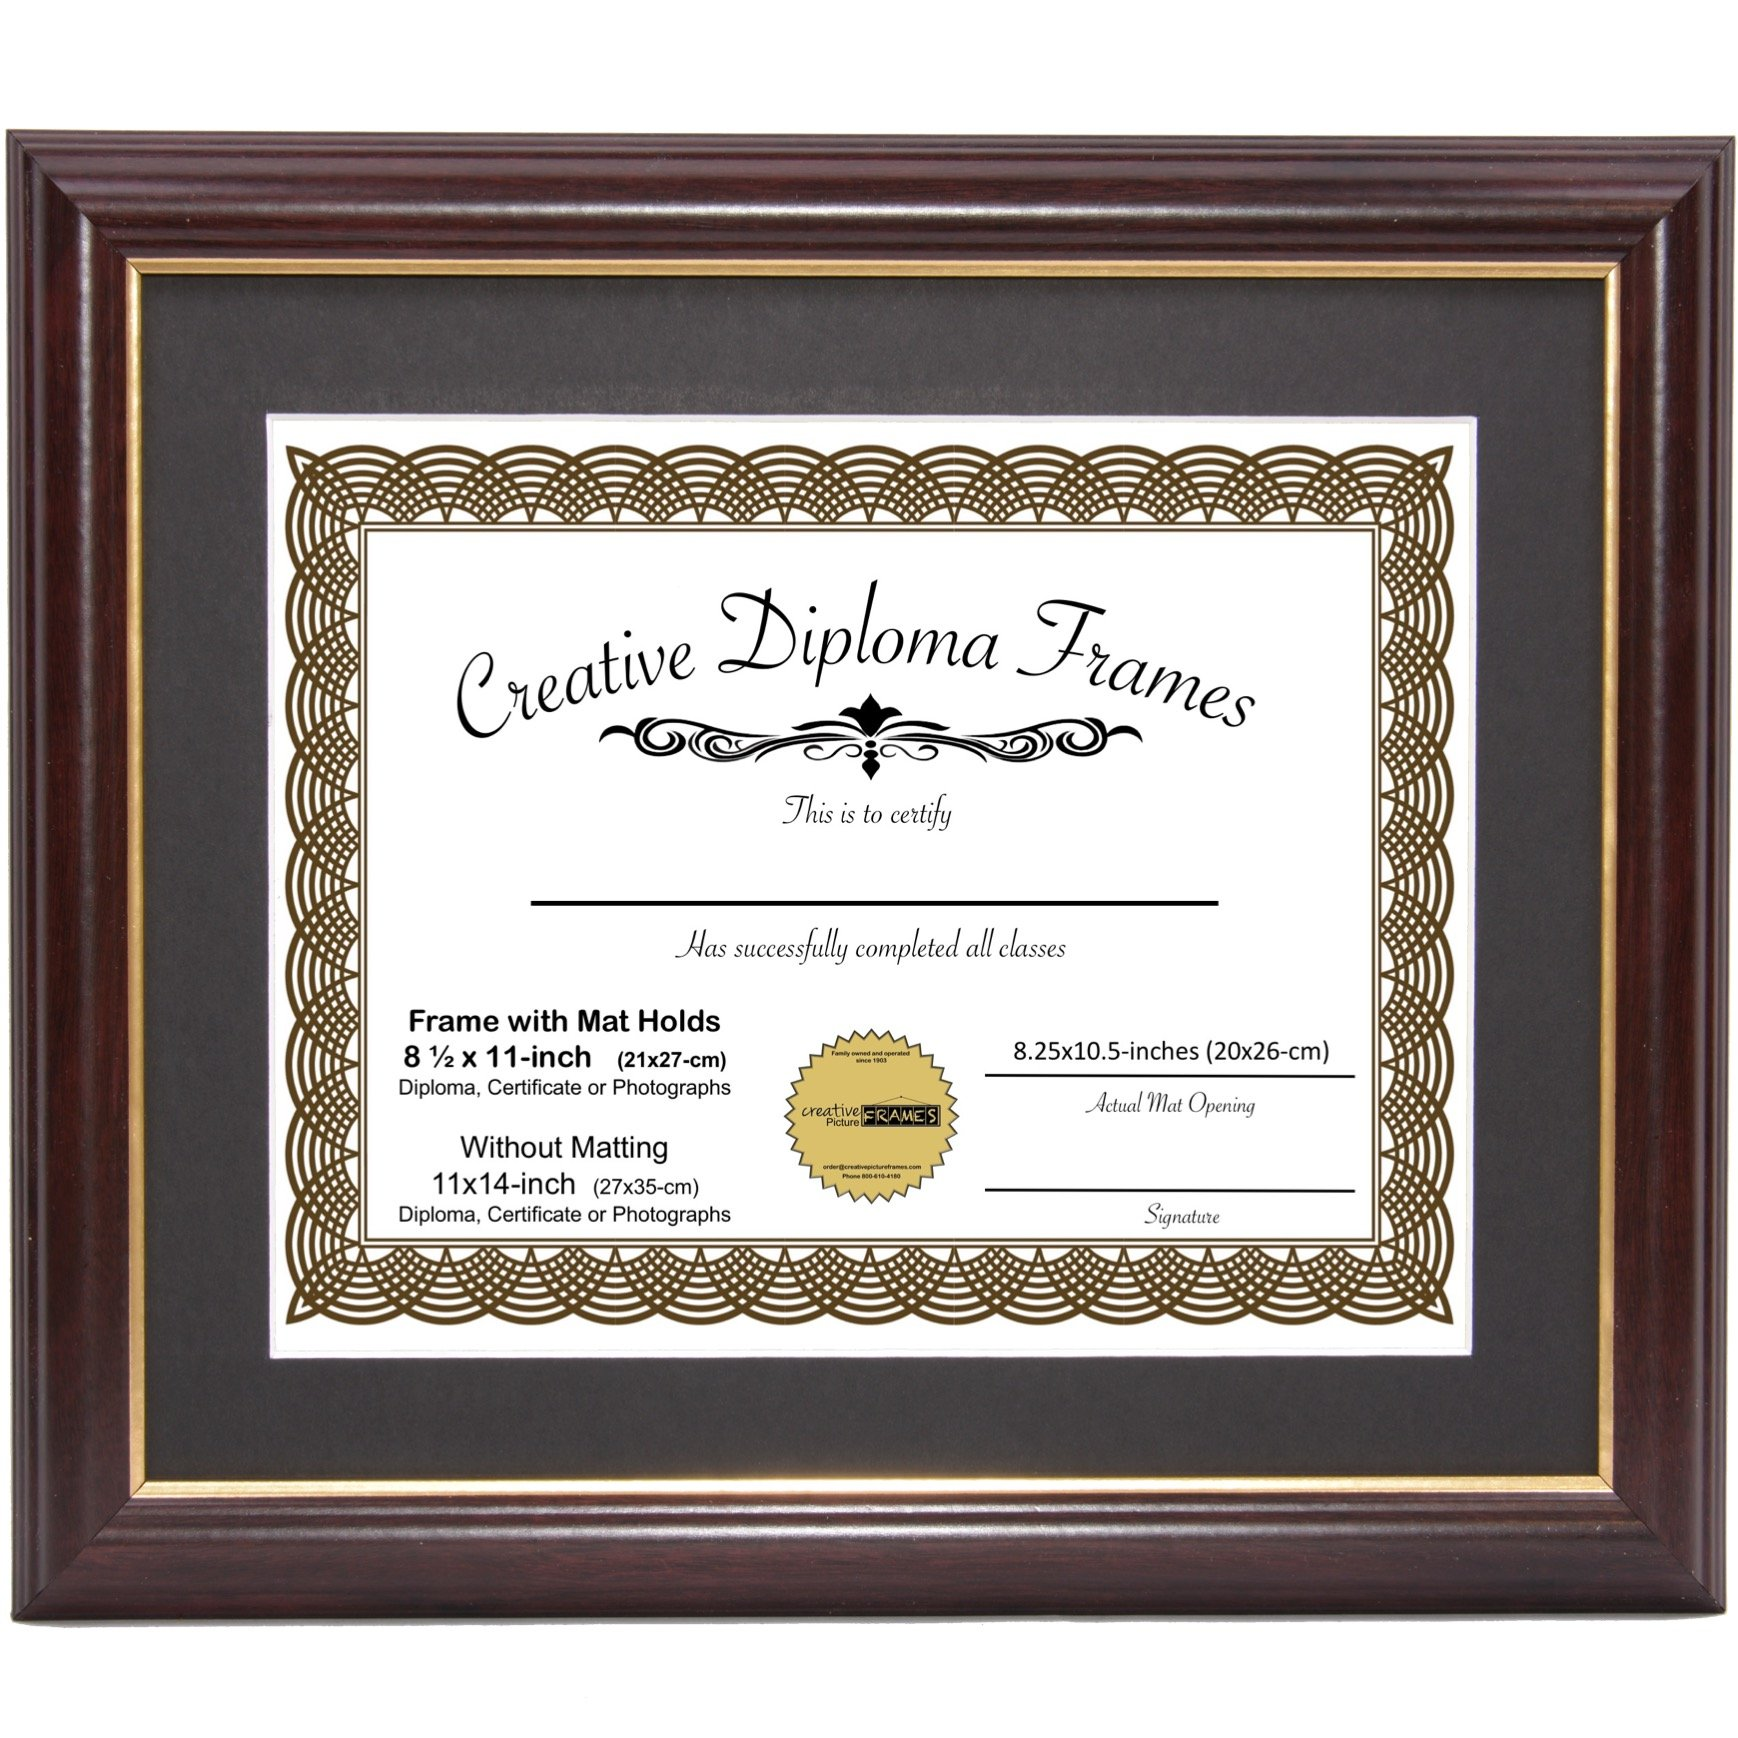 CreativePF [11x14mh.gd] Mahogany Frame Gold Rim, Black Matting Holds 8.5 11-inch Diploma Easel Installed Hangers